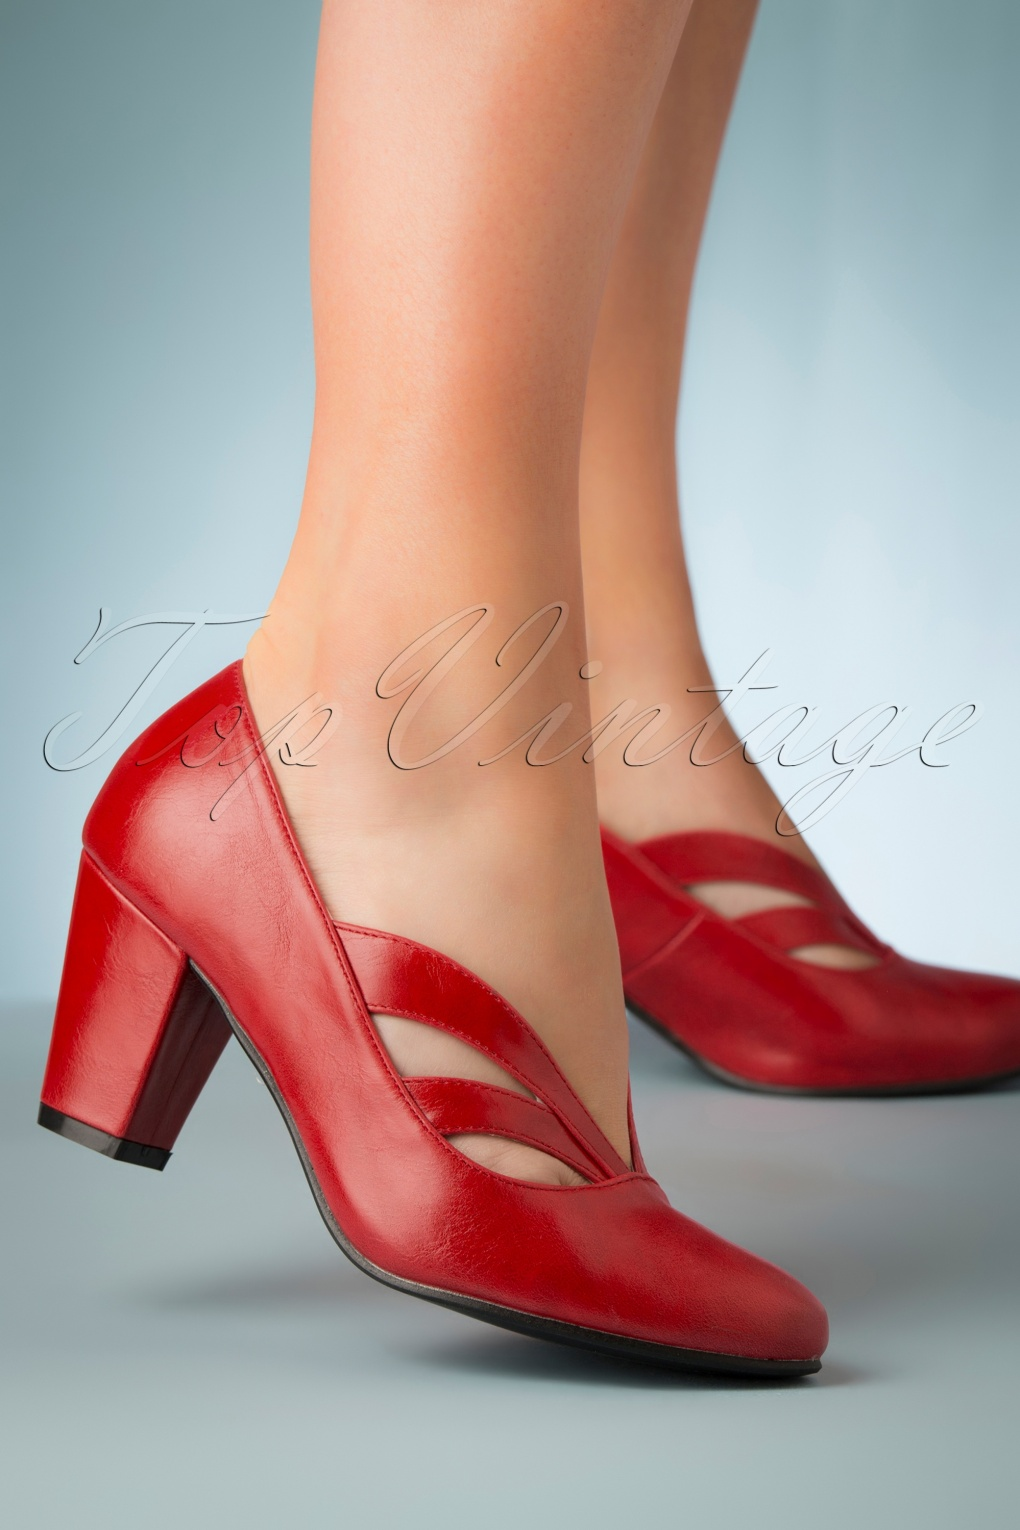 Pin Up Shoes- Heels, Pumps & Flats 40s Layla Pumps in Red £45.79 AT vintagedancer.com